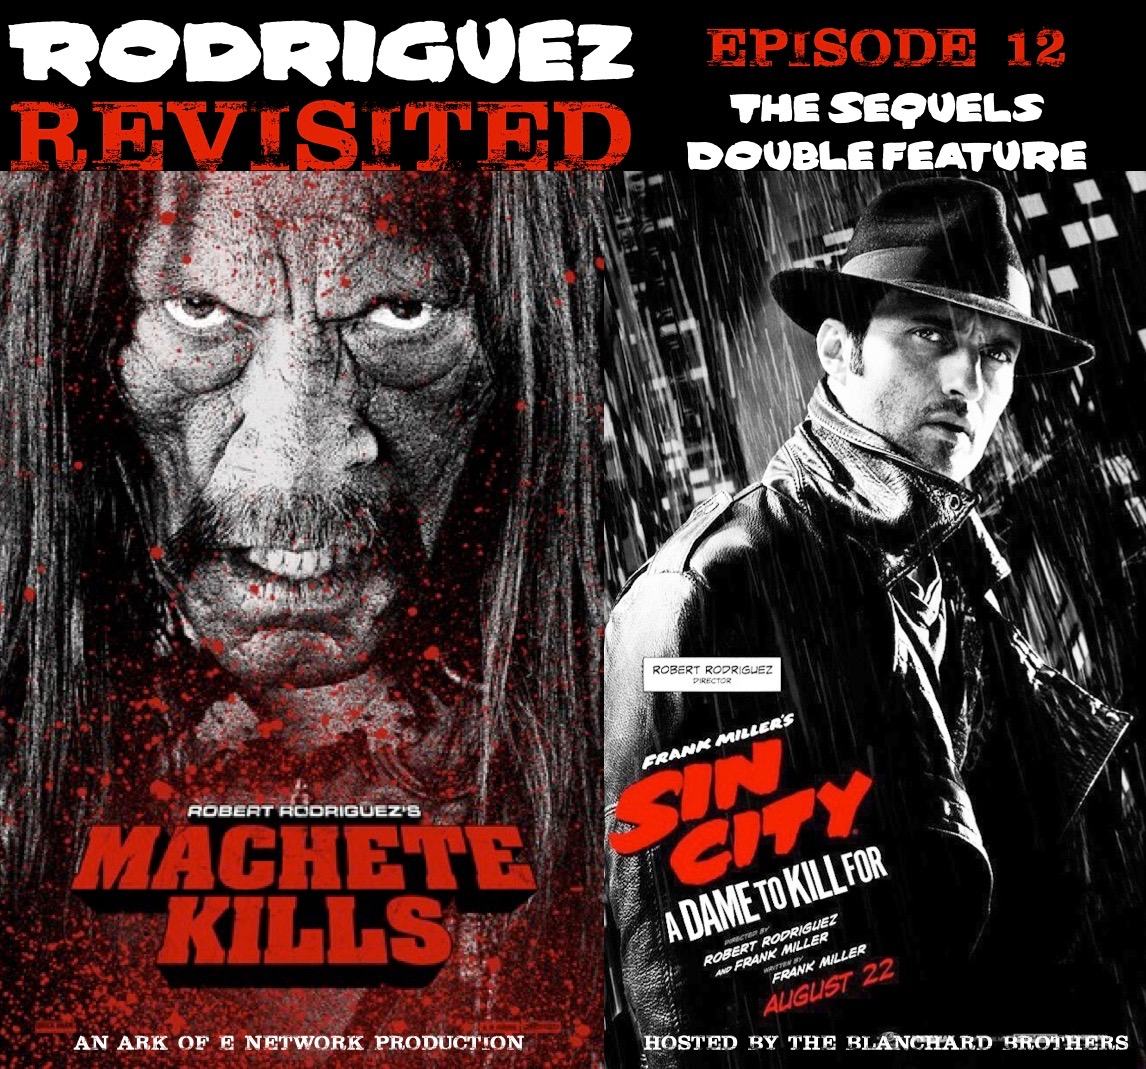 The Movie Ark Podcast Presents Rodriguez Revisited Episode 12